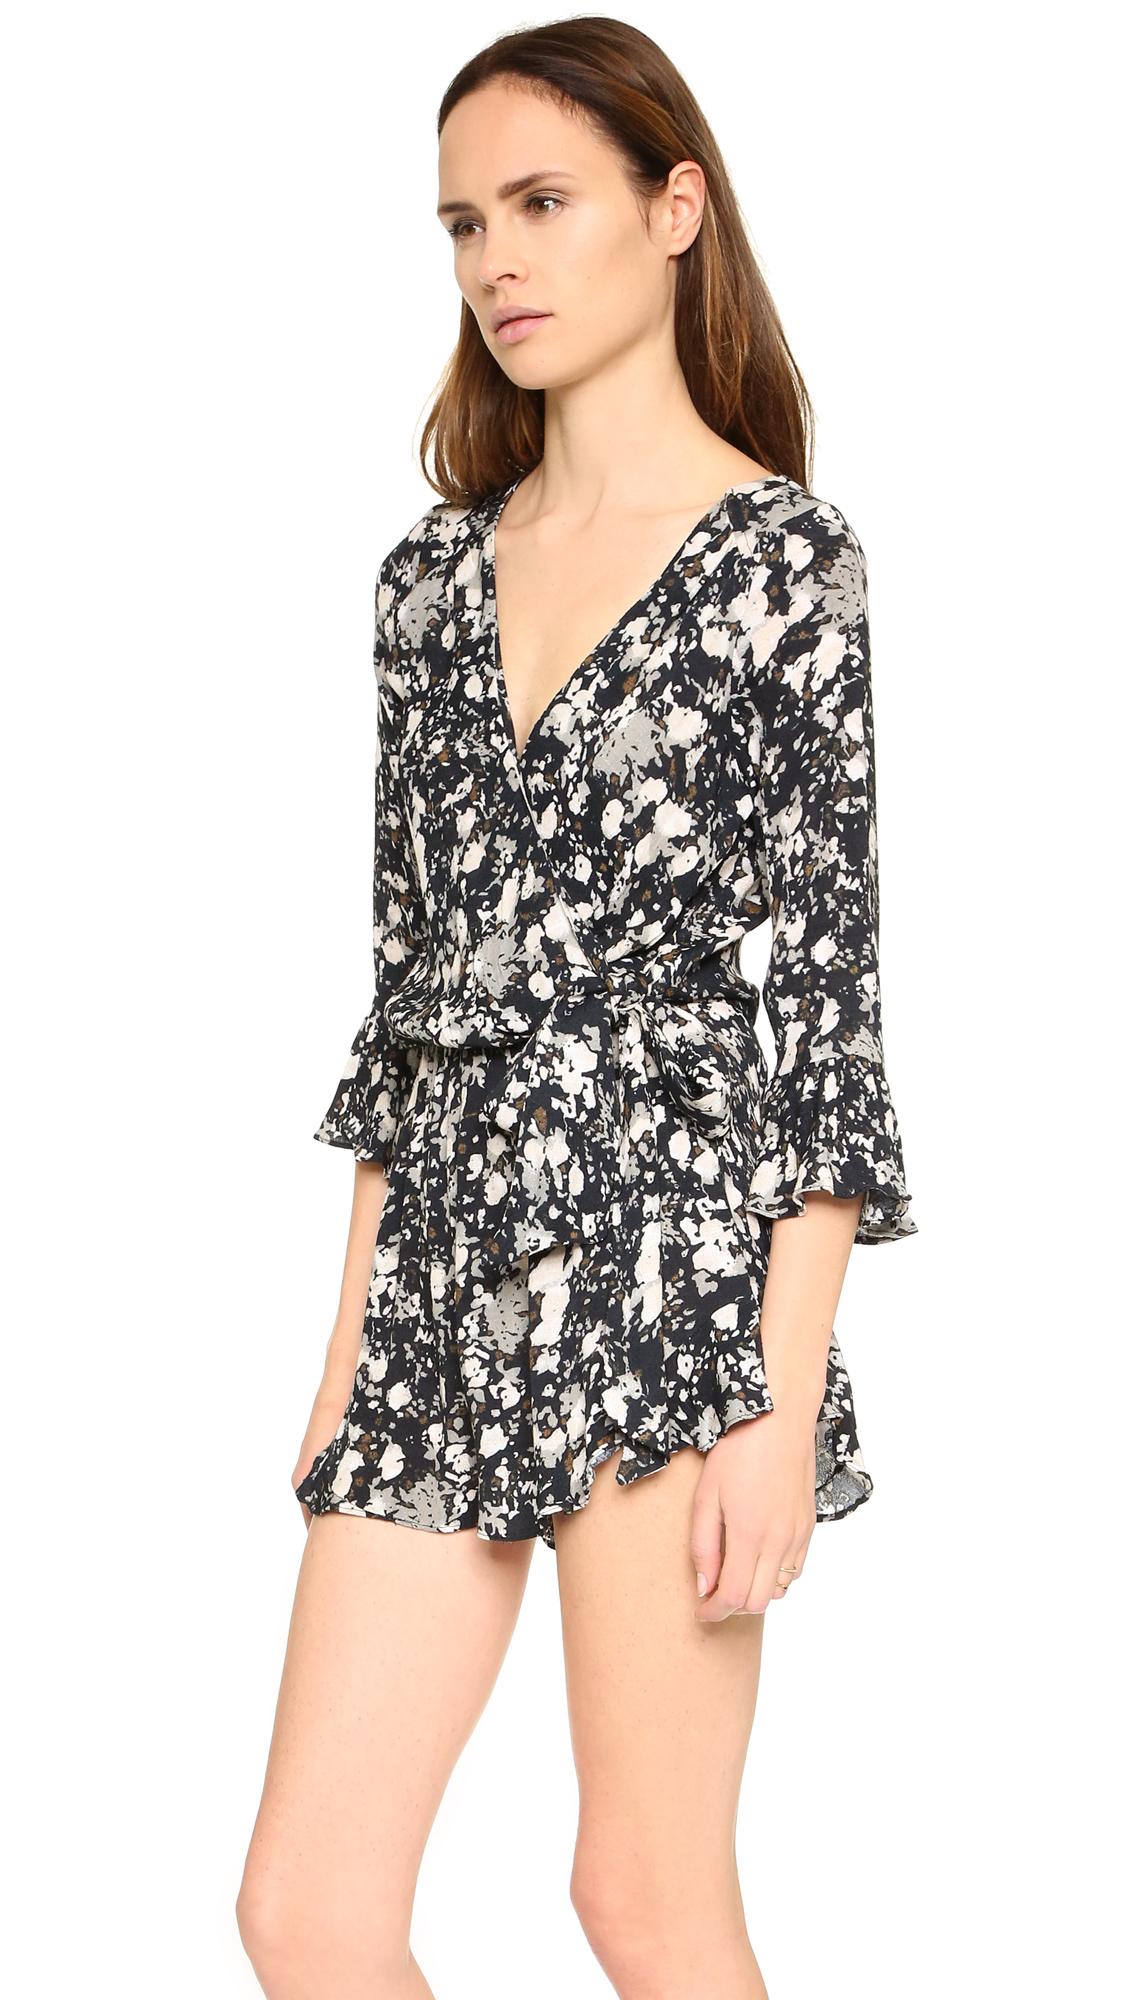 0f4a8a7636a Lyst - Free People All The Right Ruffles Romper in Black